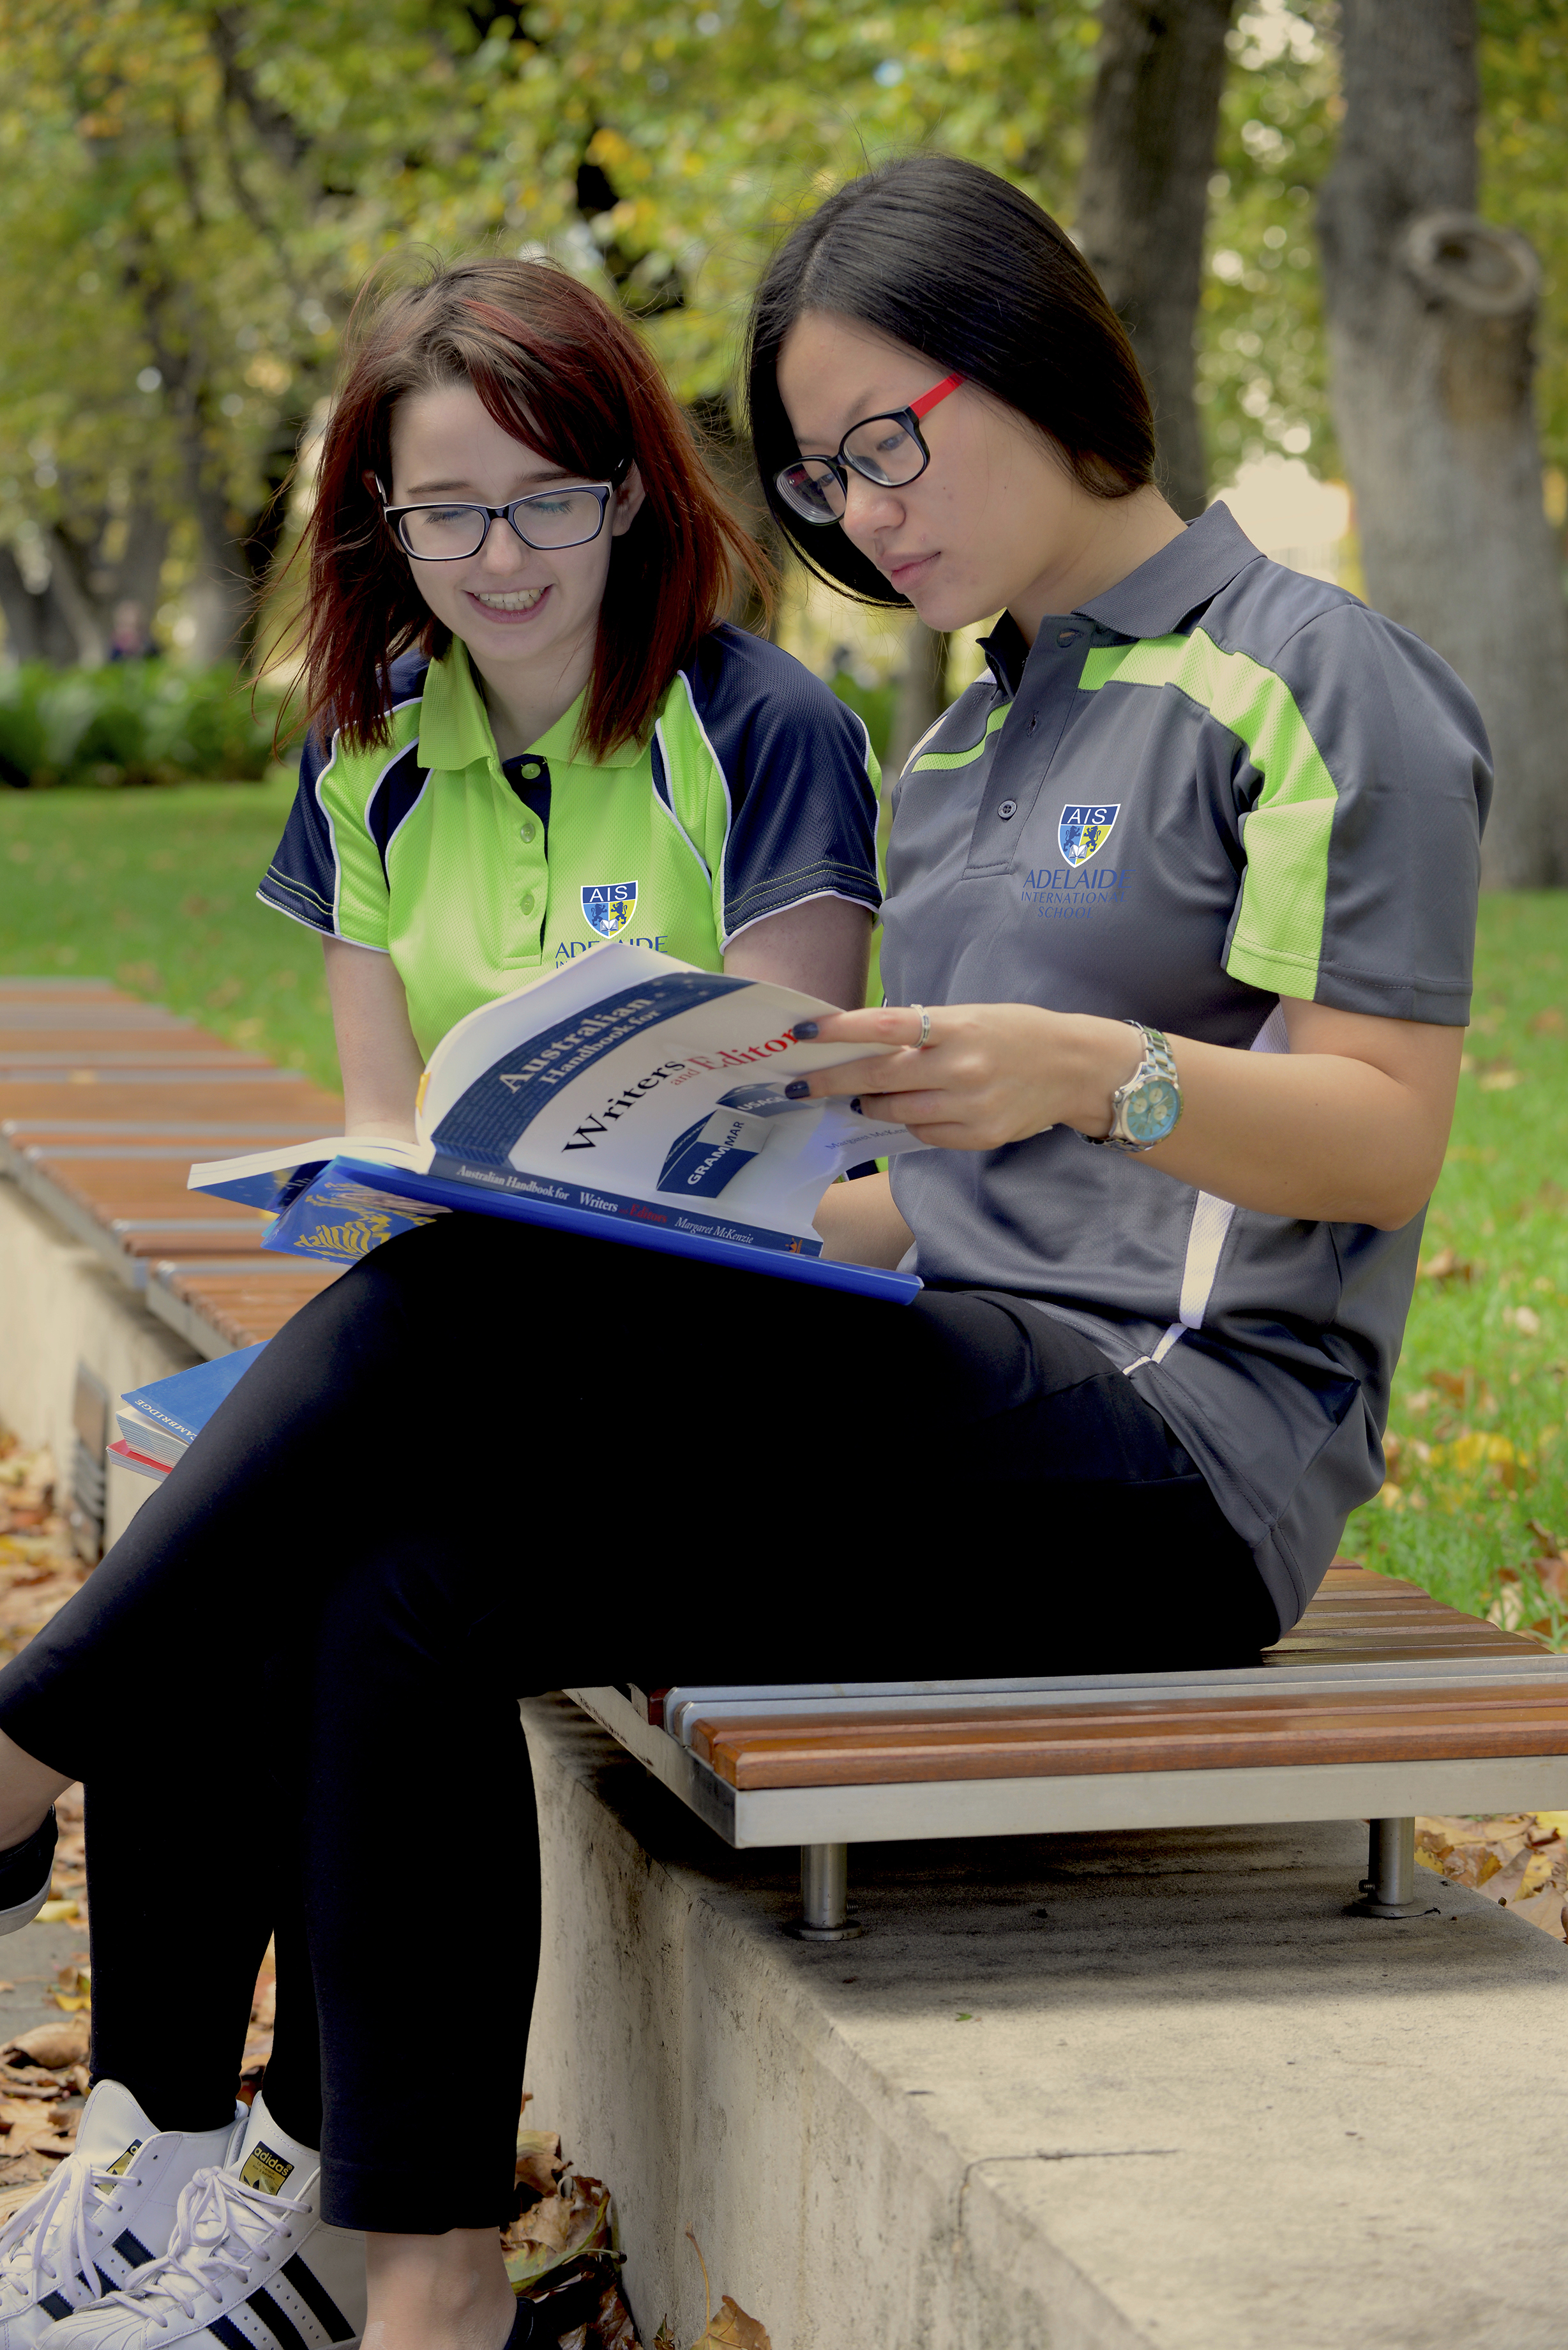 Students in the Uni Grounds - Adelaide is our Campus - Adelaide International School